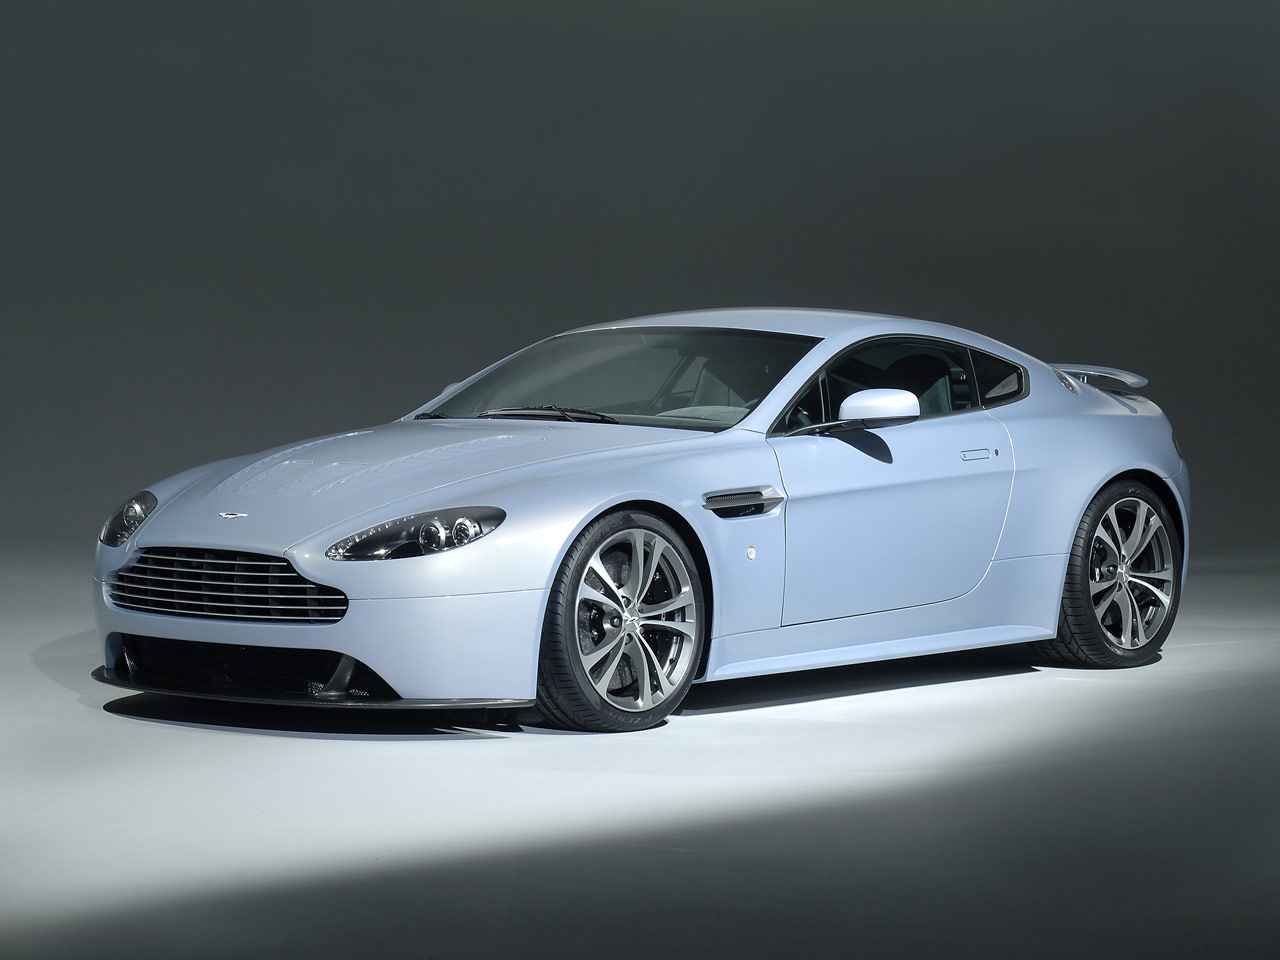 vantage – Automobile Wallpapers in, HD | Iphone | Android| Desktop 13 Wallpaper